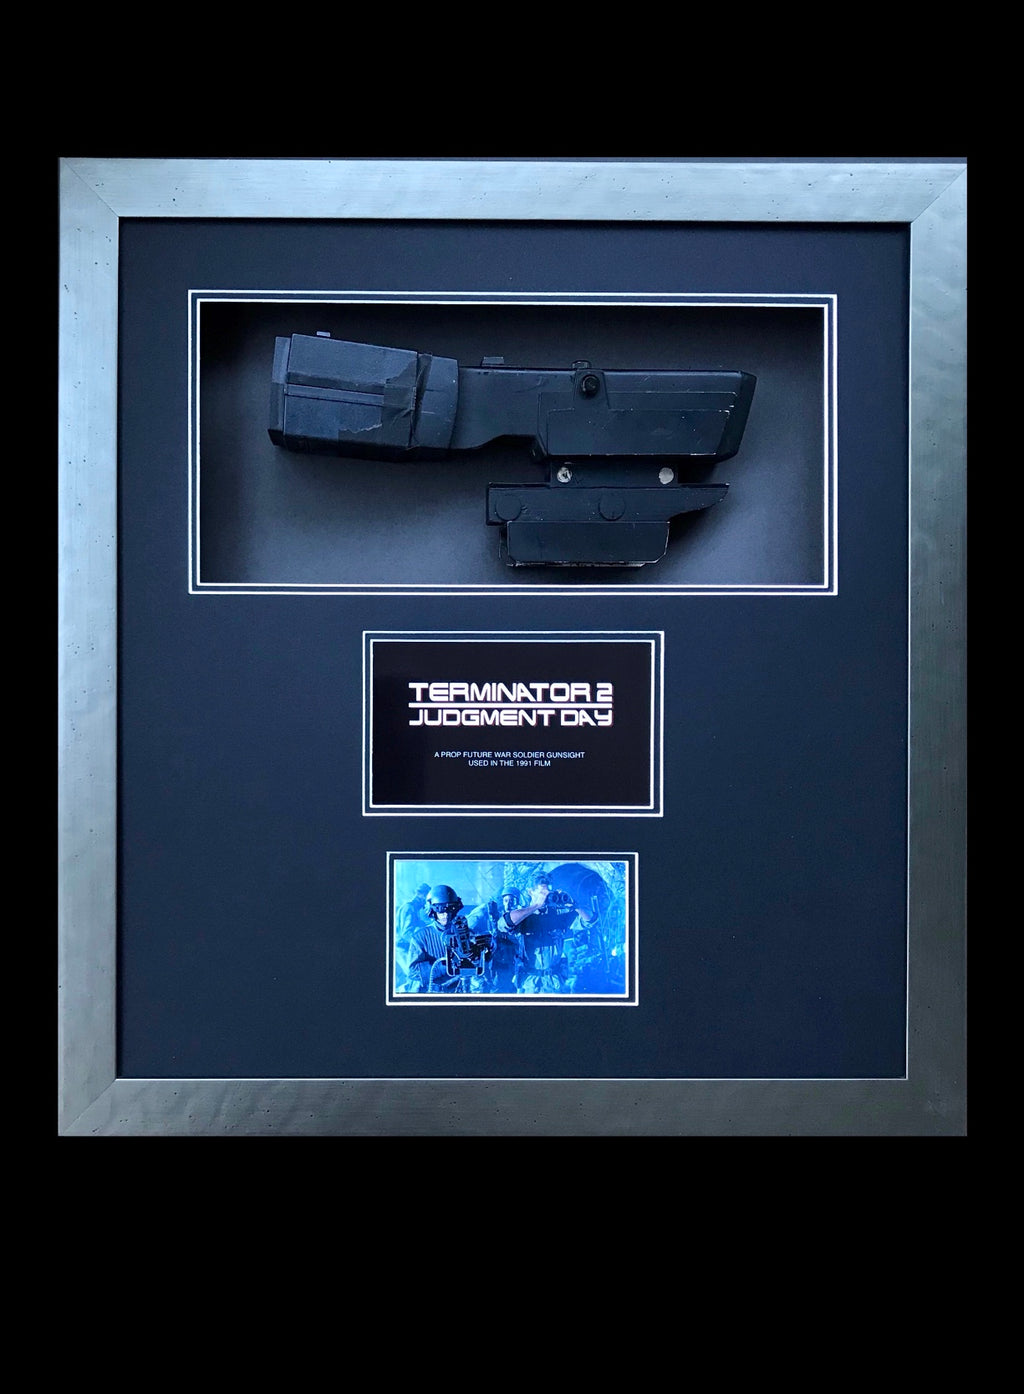 Terminator 2: Judgment Day (1991) - A Future War Soldier Prop Gunsight